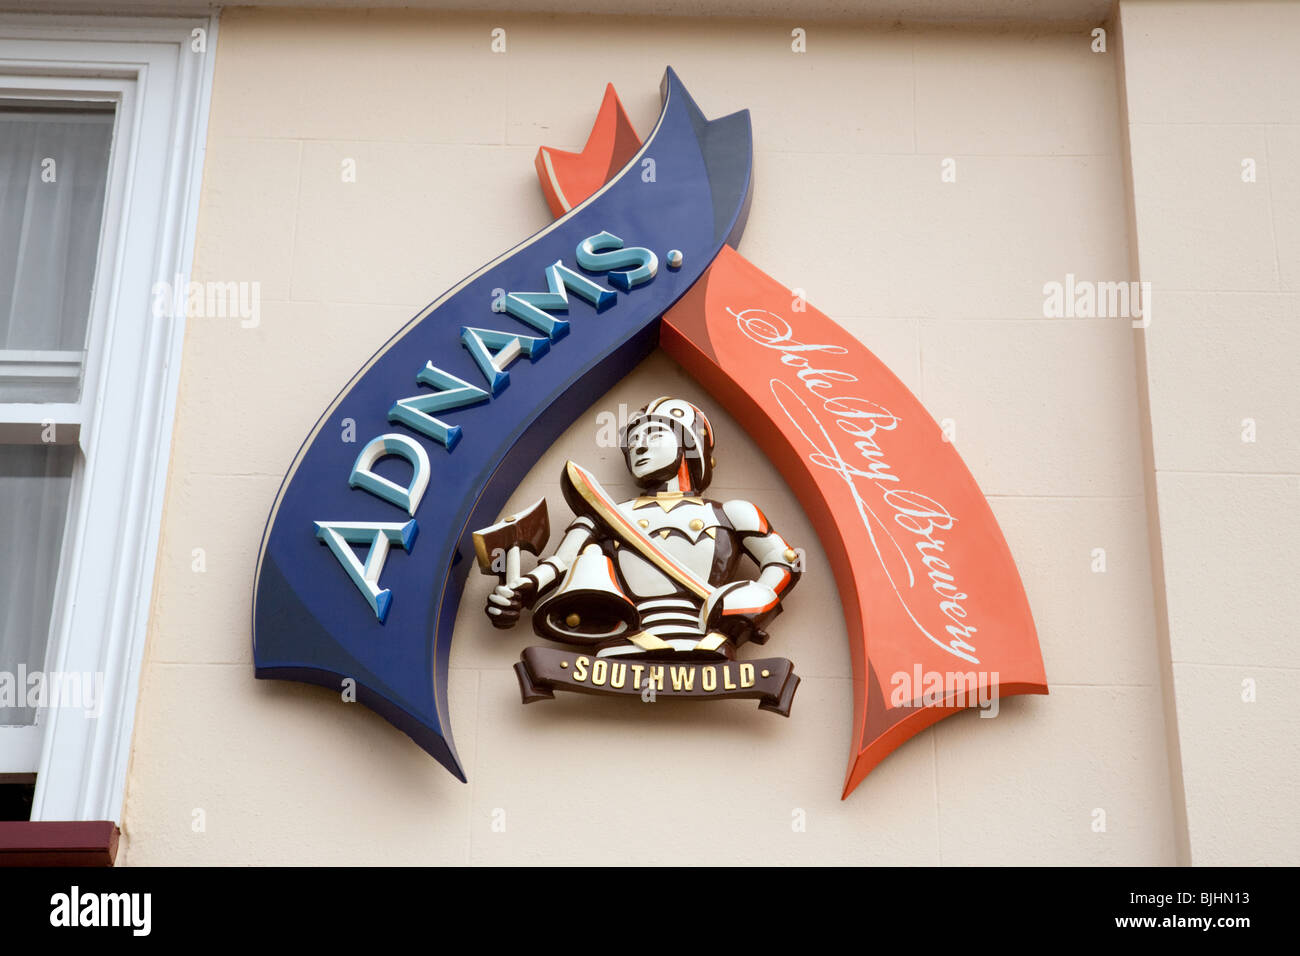 The sign for Adnams Sole Bay Brewery, Southwold, Suffolk, UK - Stock Image